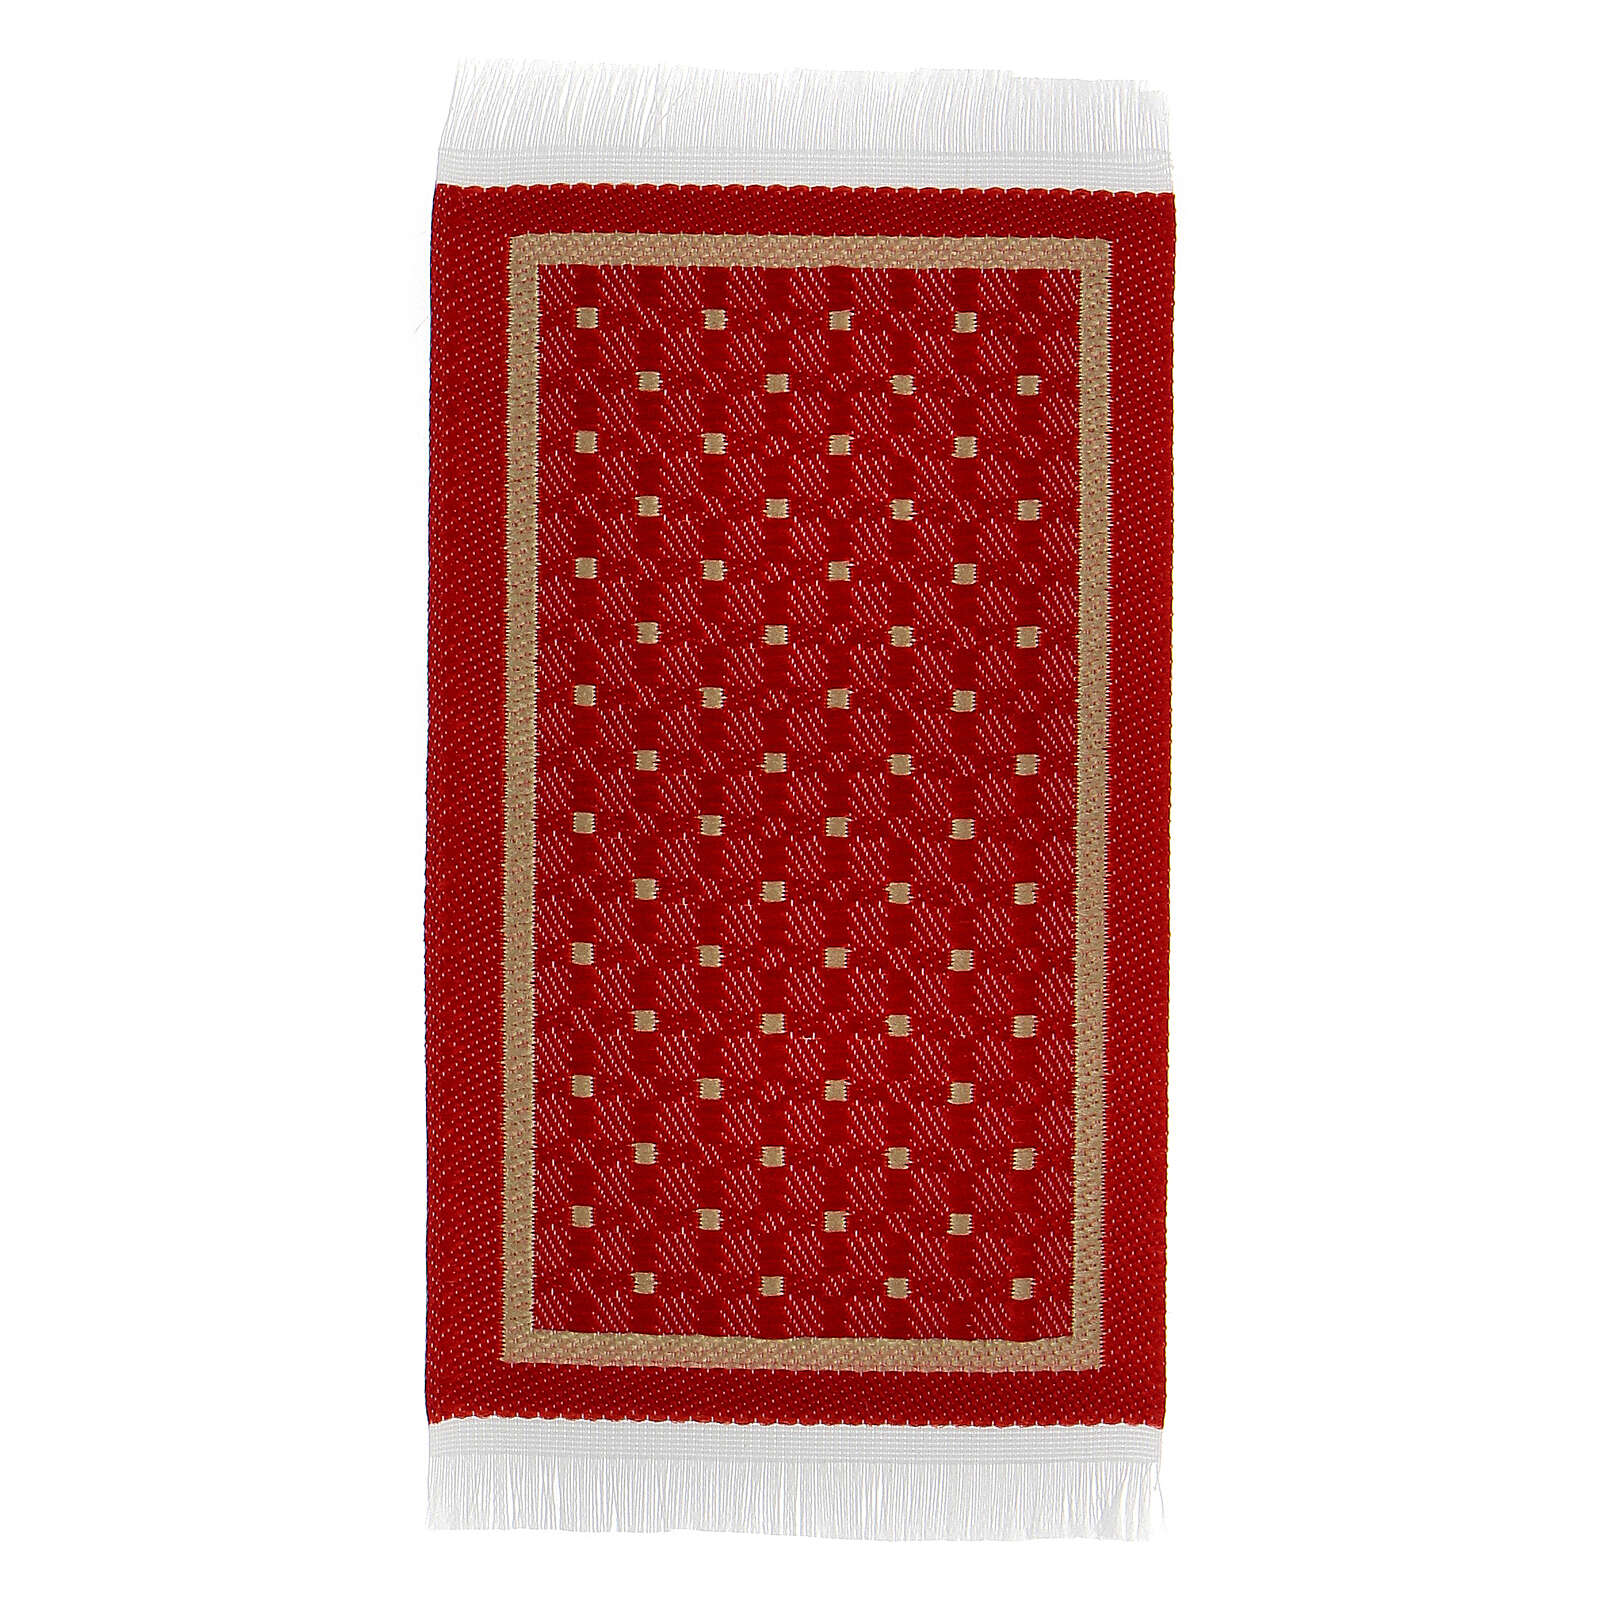 Red and gold carpet 8x5 cm for Nativity Scene with 10-16 cm figurines 4